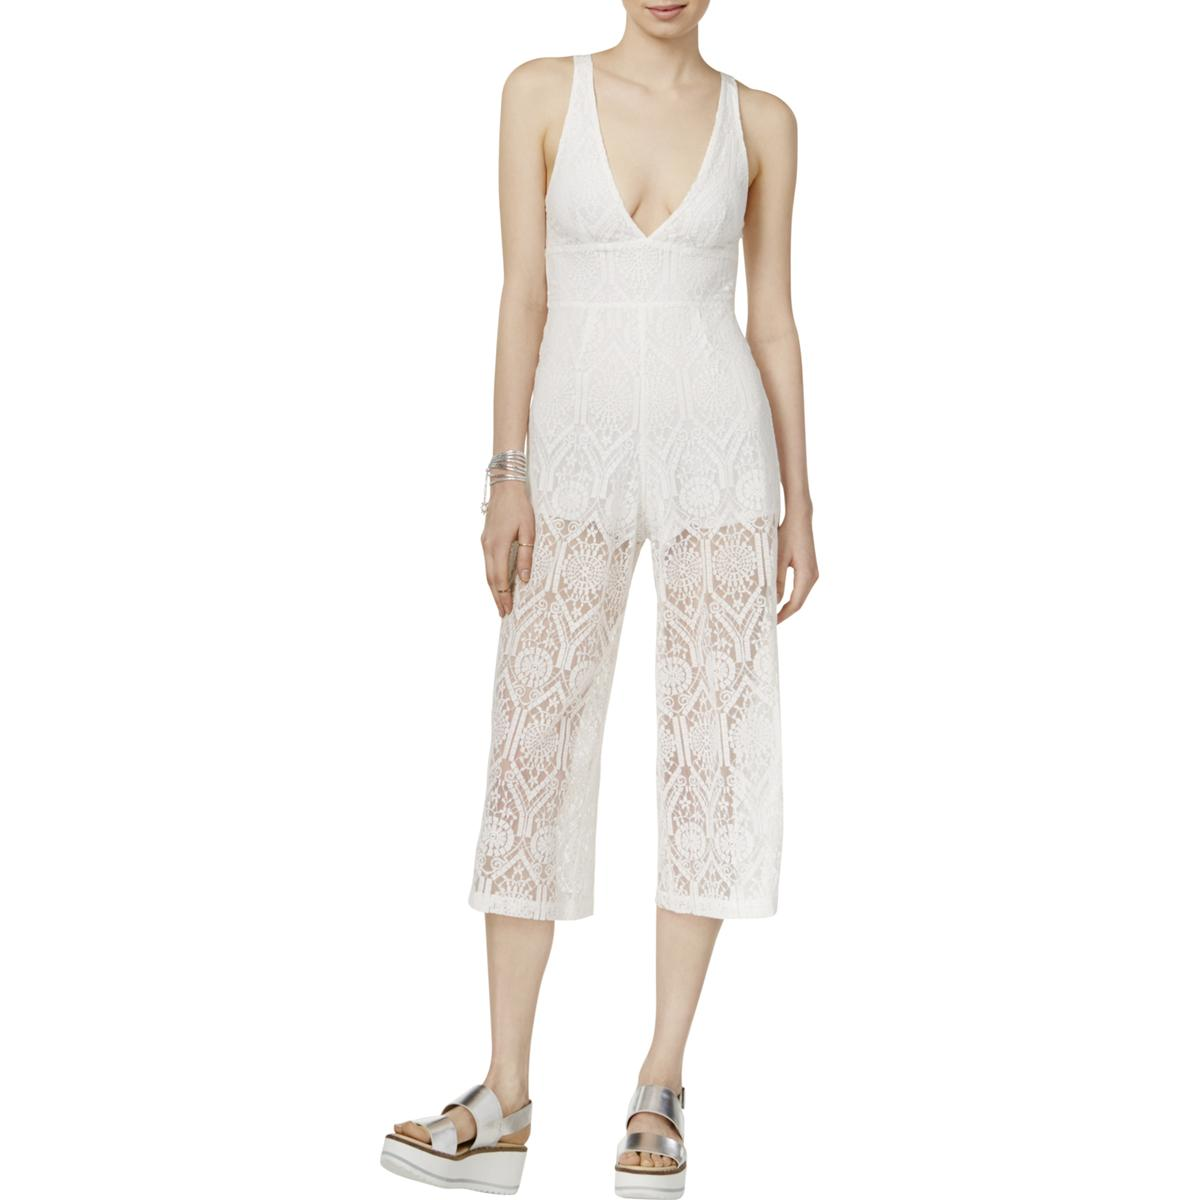 4ddb5adb9b3 Details about Minkpink Womens Lace Cropped Wide Leg Jumpsuit BHFO 0366